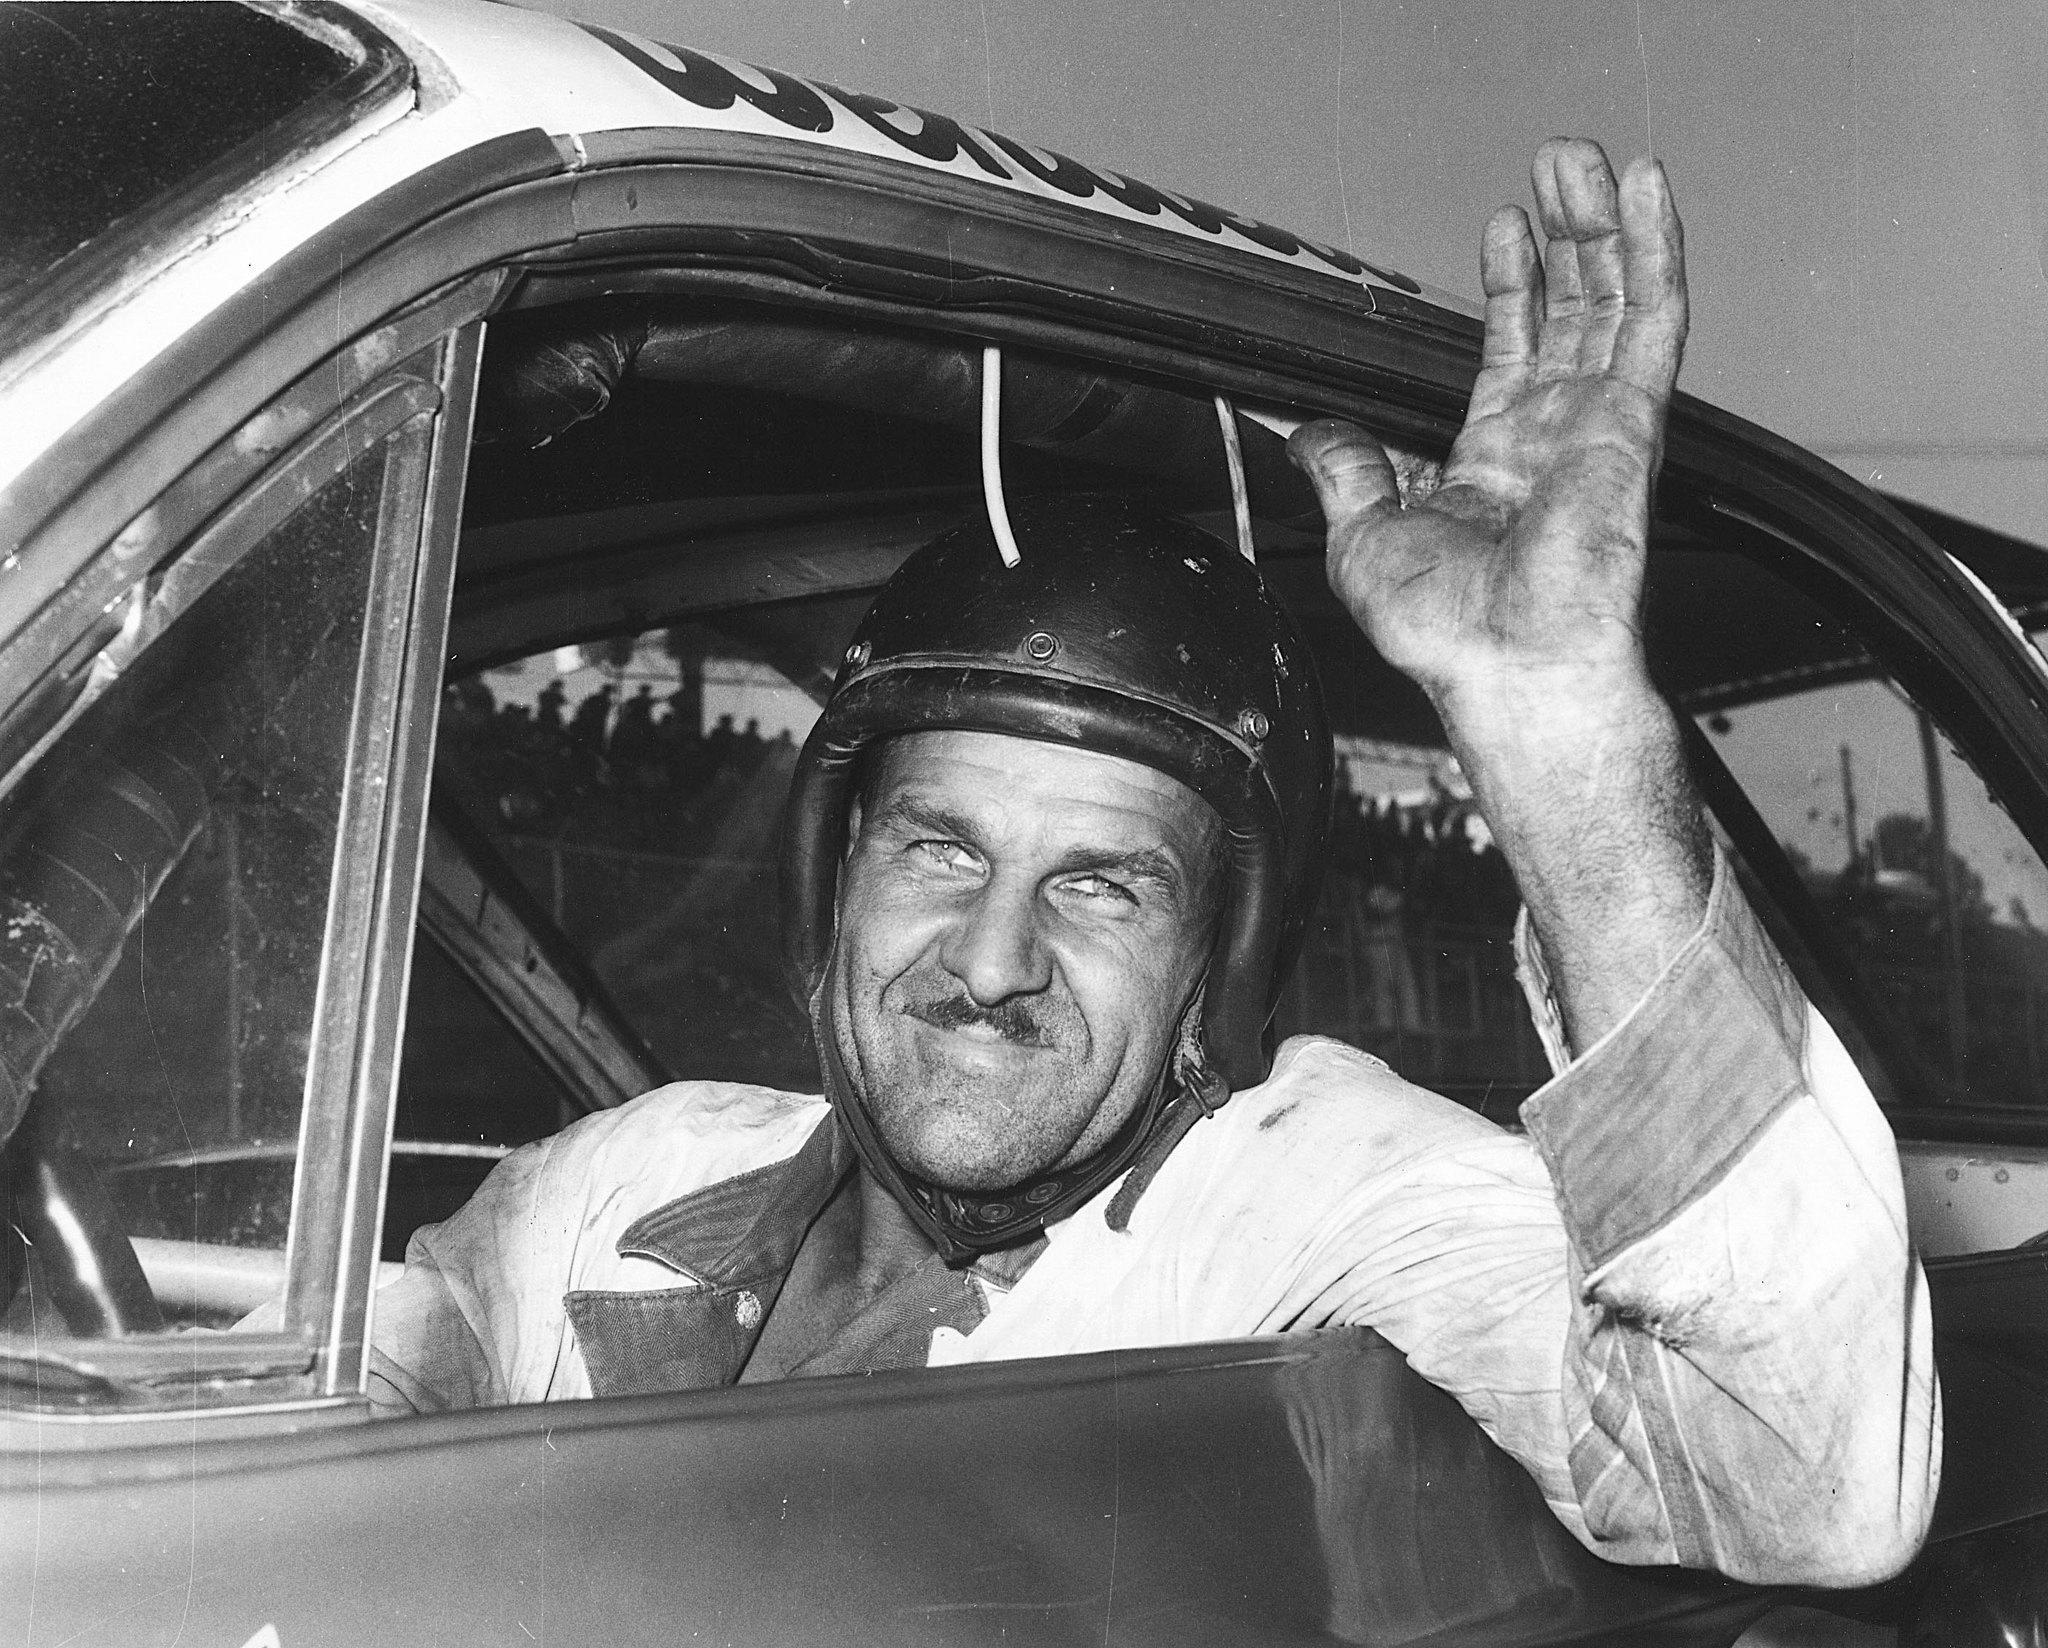 Wendell Scott won only one NASCAR Grand National race during his 40-plus year career. His lone victory came in the 200-mile event at Jacksonville Speedway in Jacksonville, Florida on December 1, 1963.